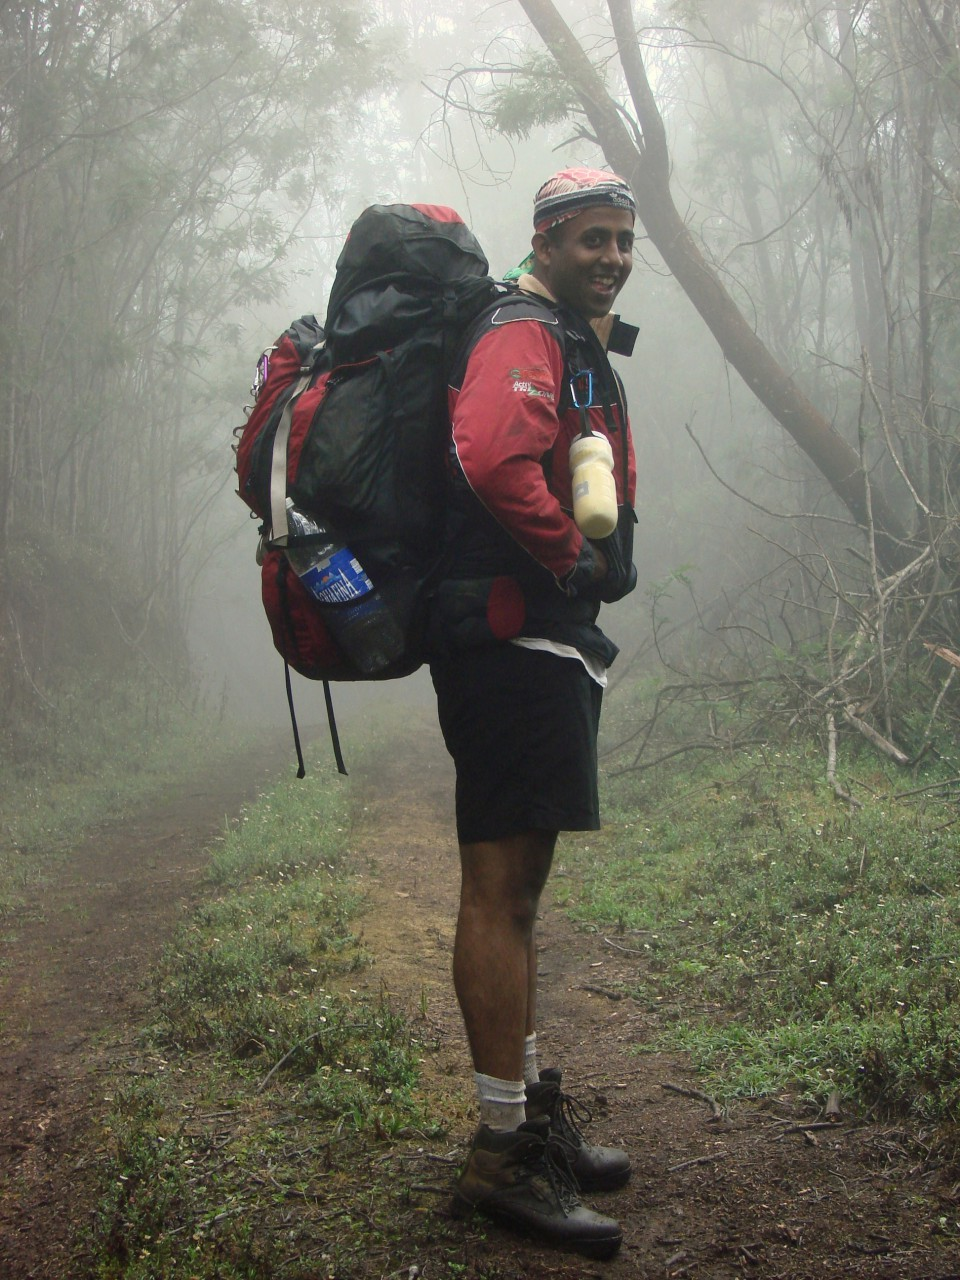 Sankara writes about travel destinations in India and the rest of the world on his blog.